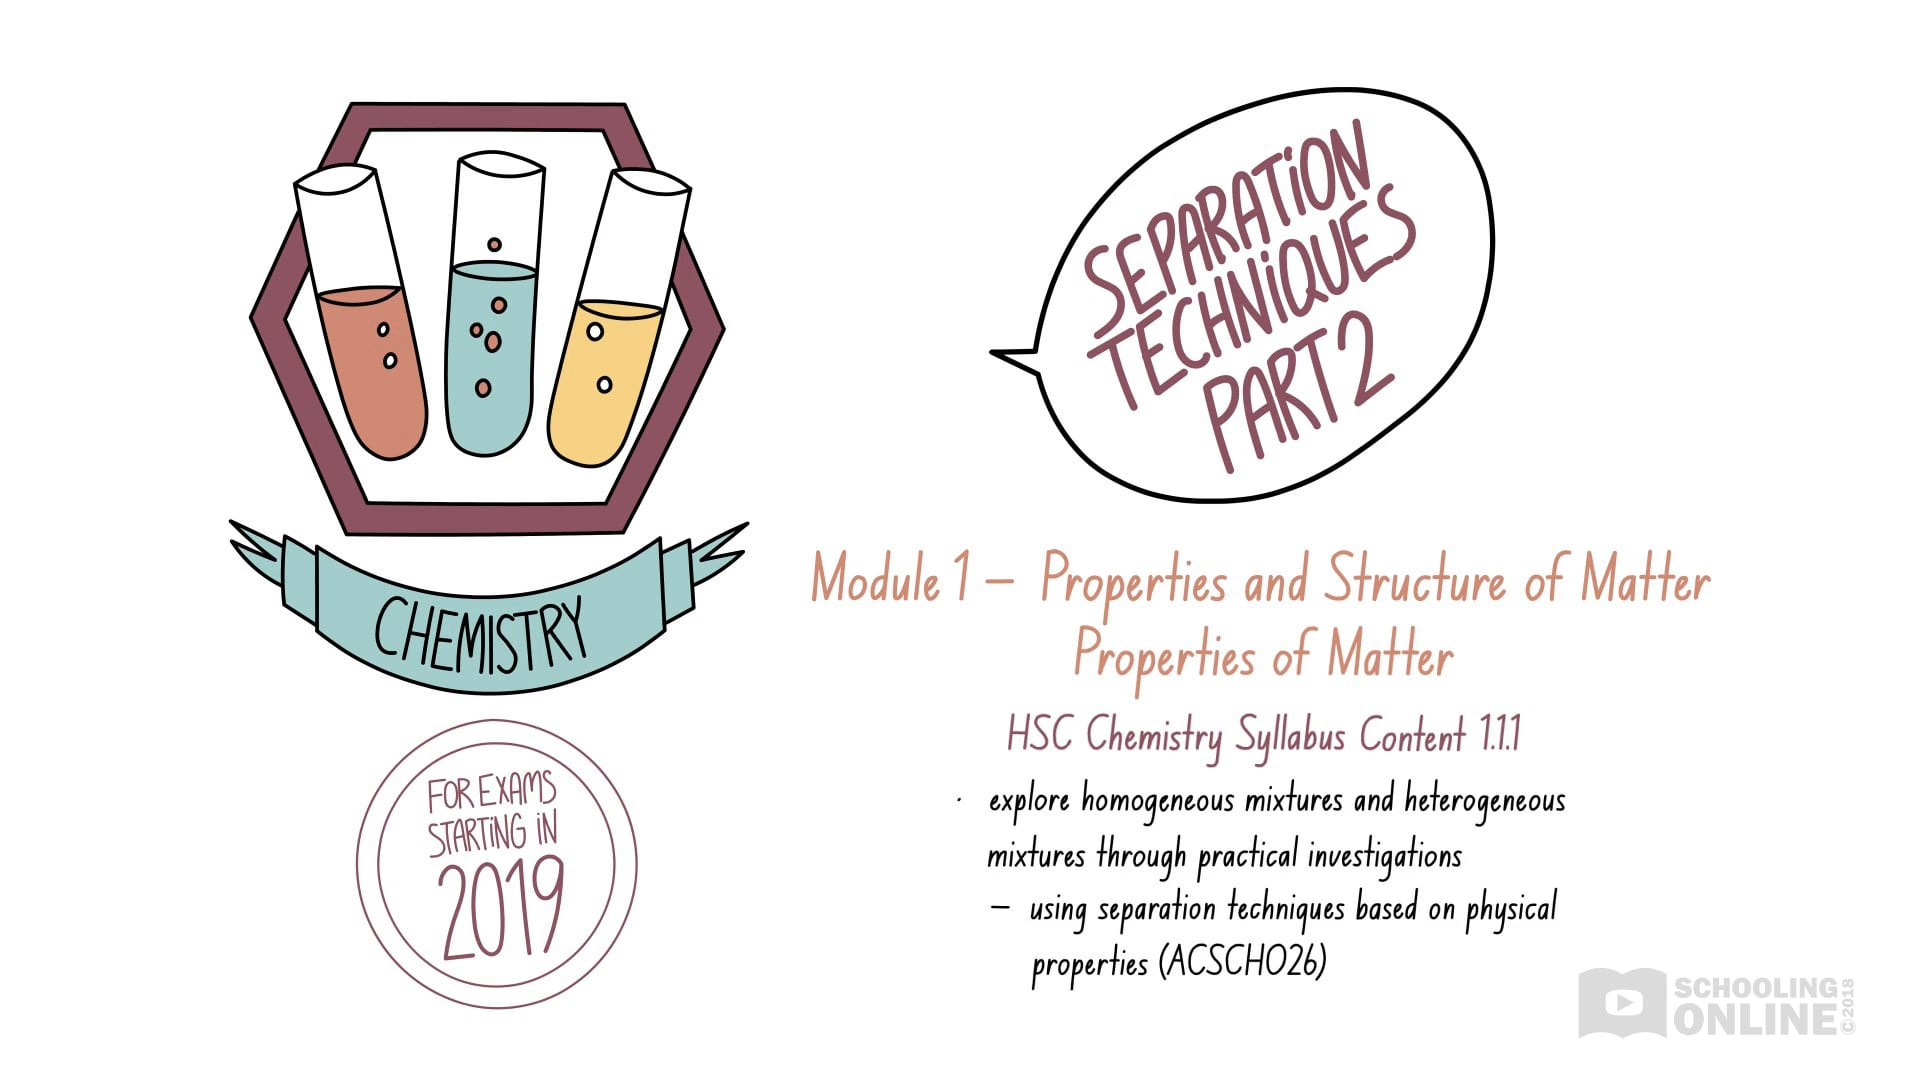 Separation Techniques 2 - Properties of Matter